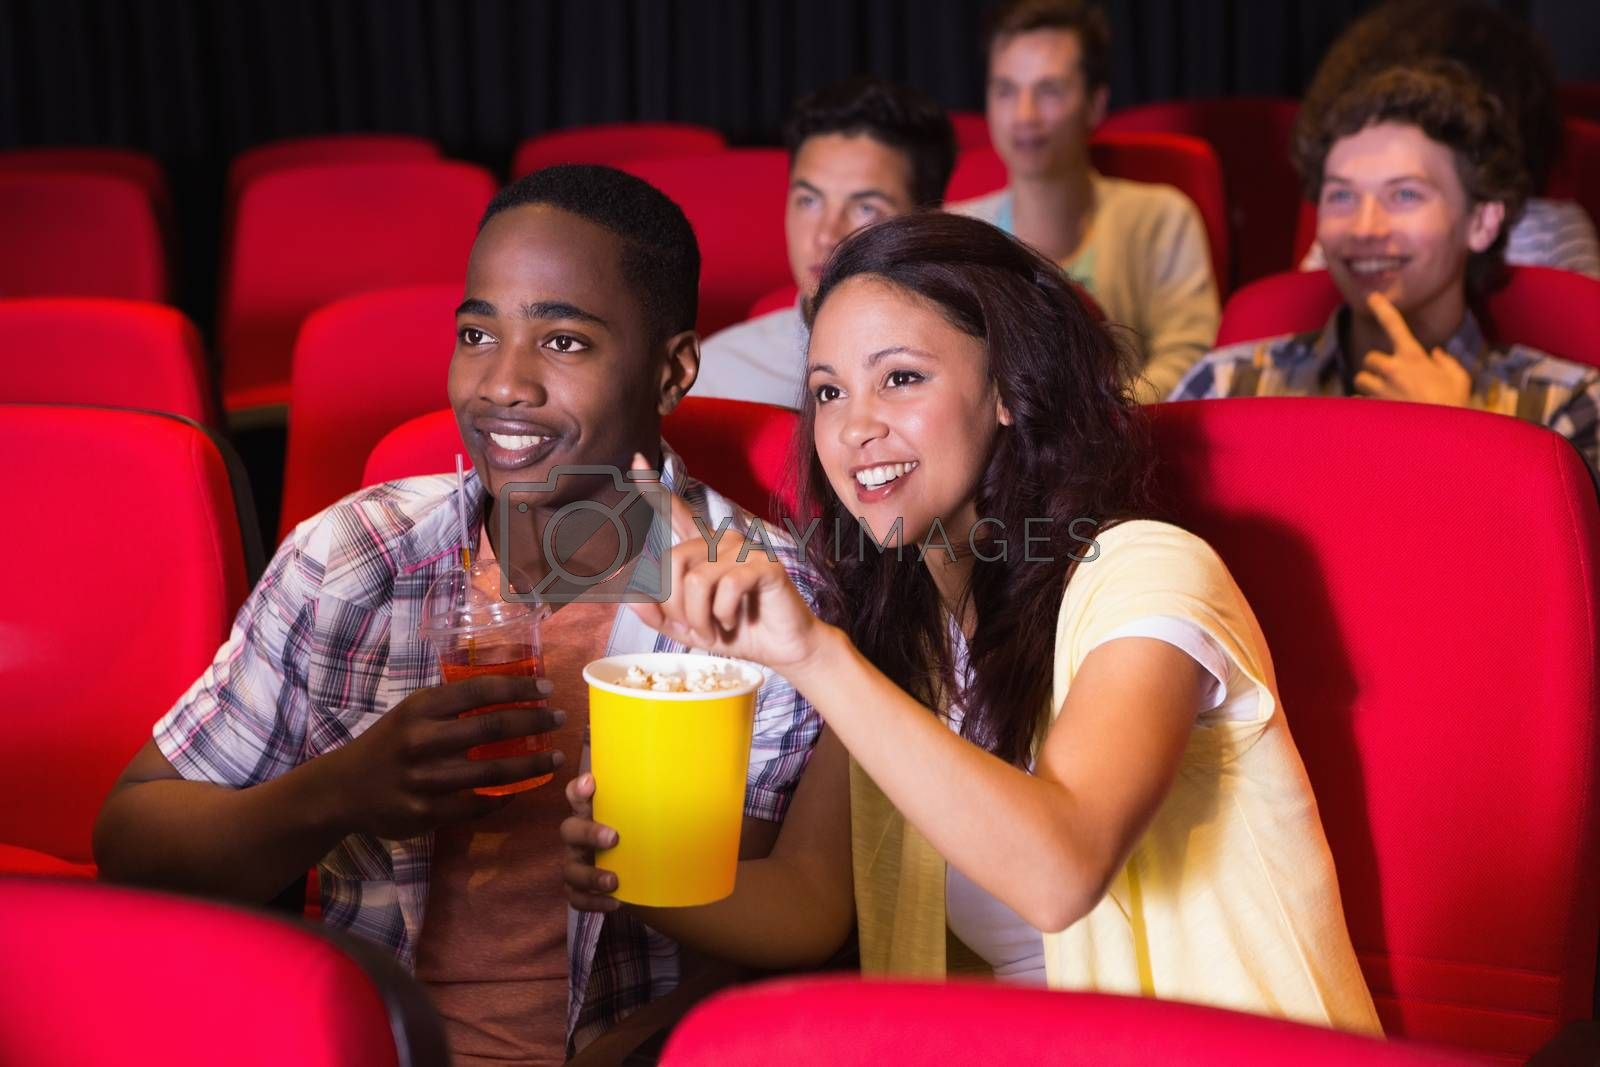 Young people watching a film at the cinema